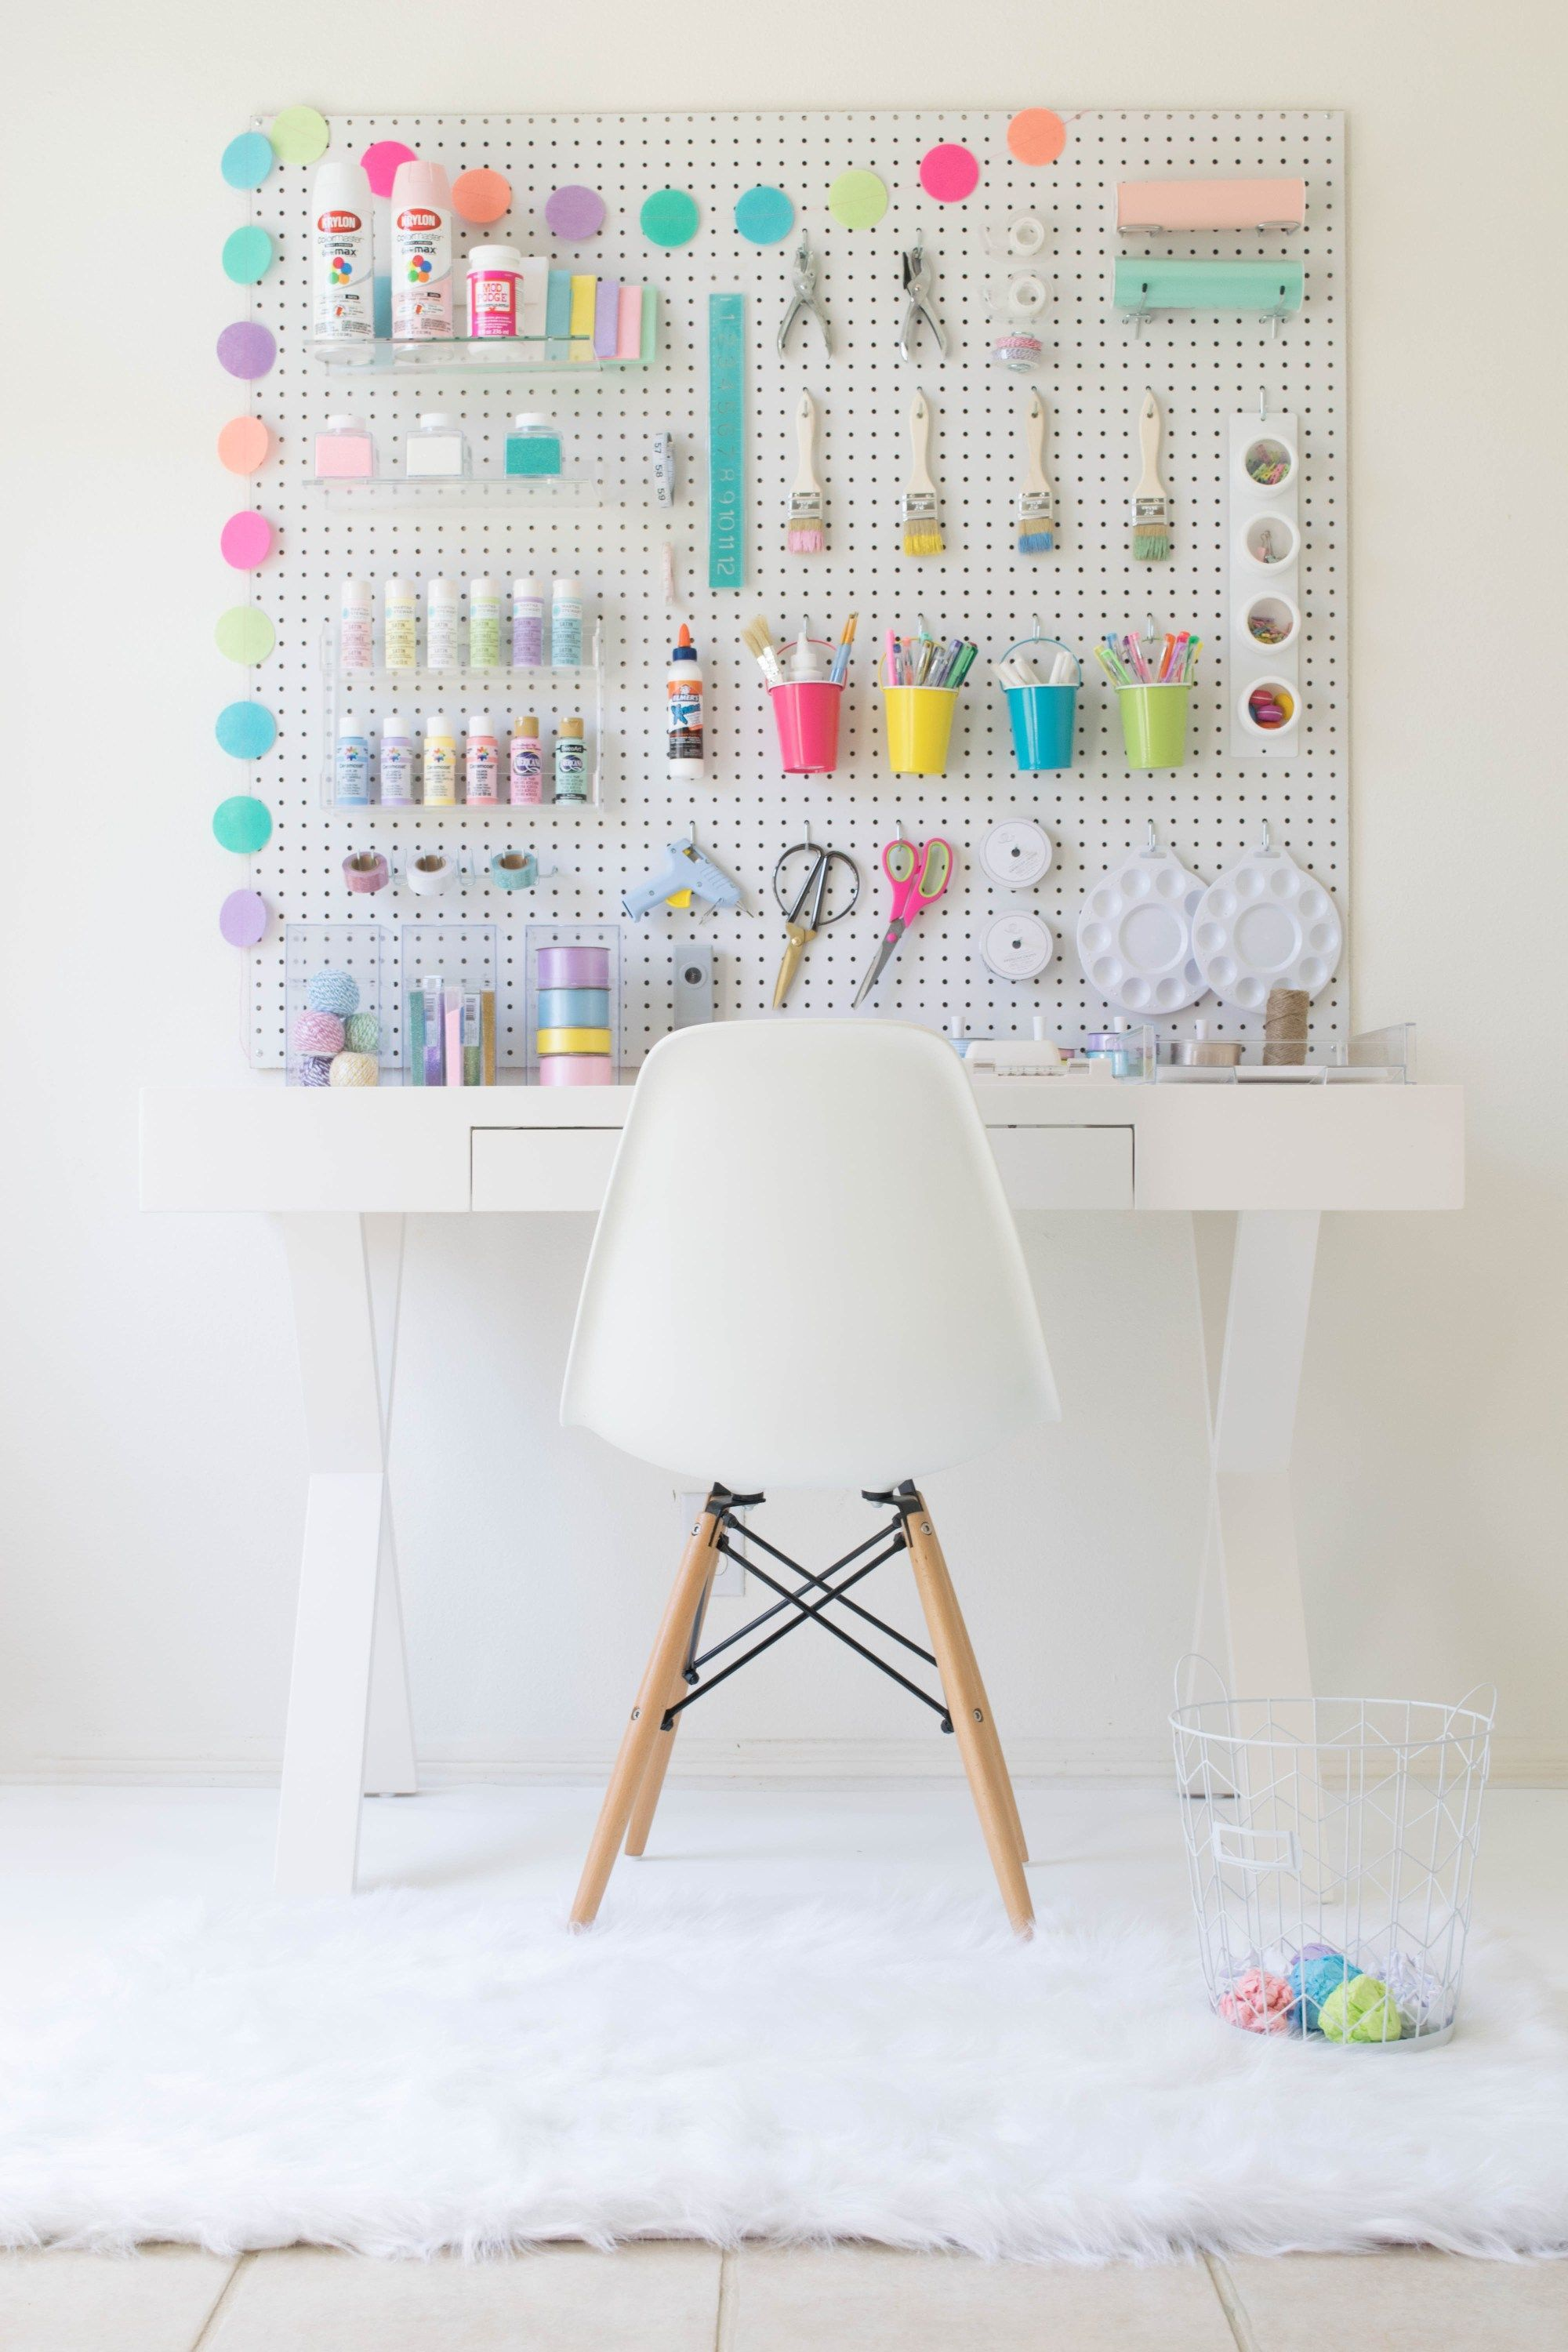 How to build your own DIY Craft Station  Décoration chambre ado